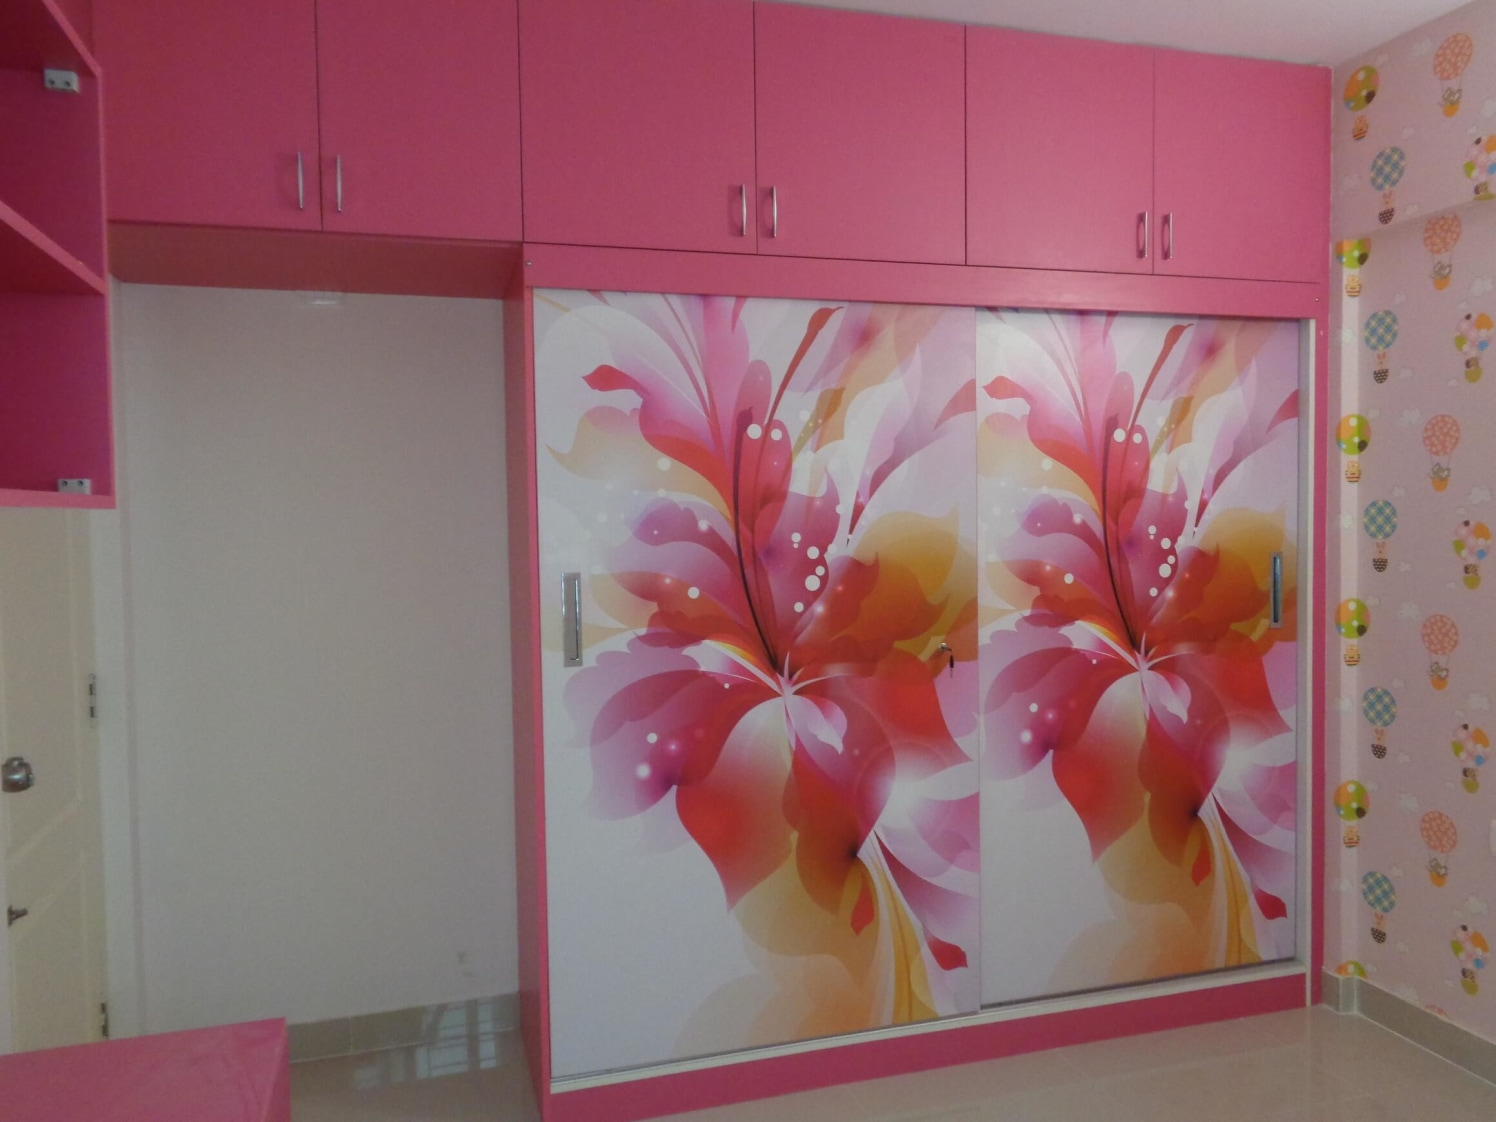 The Pink Florals by Naushad Bedroom Modern | Interior Design Photos & Ideas